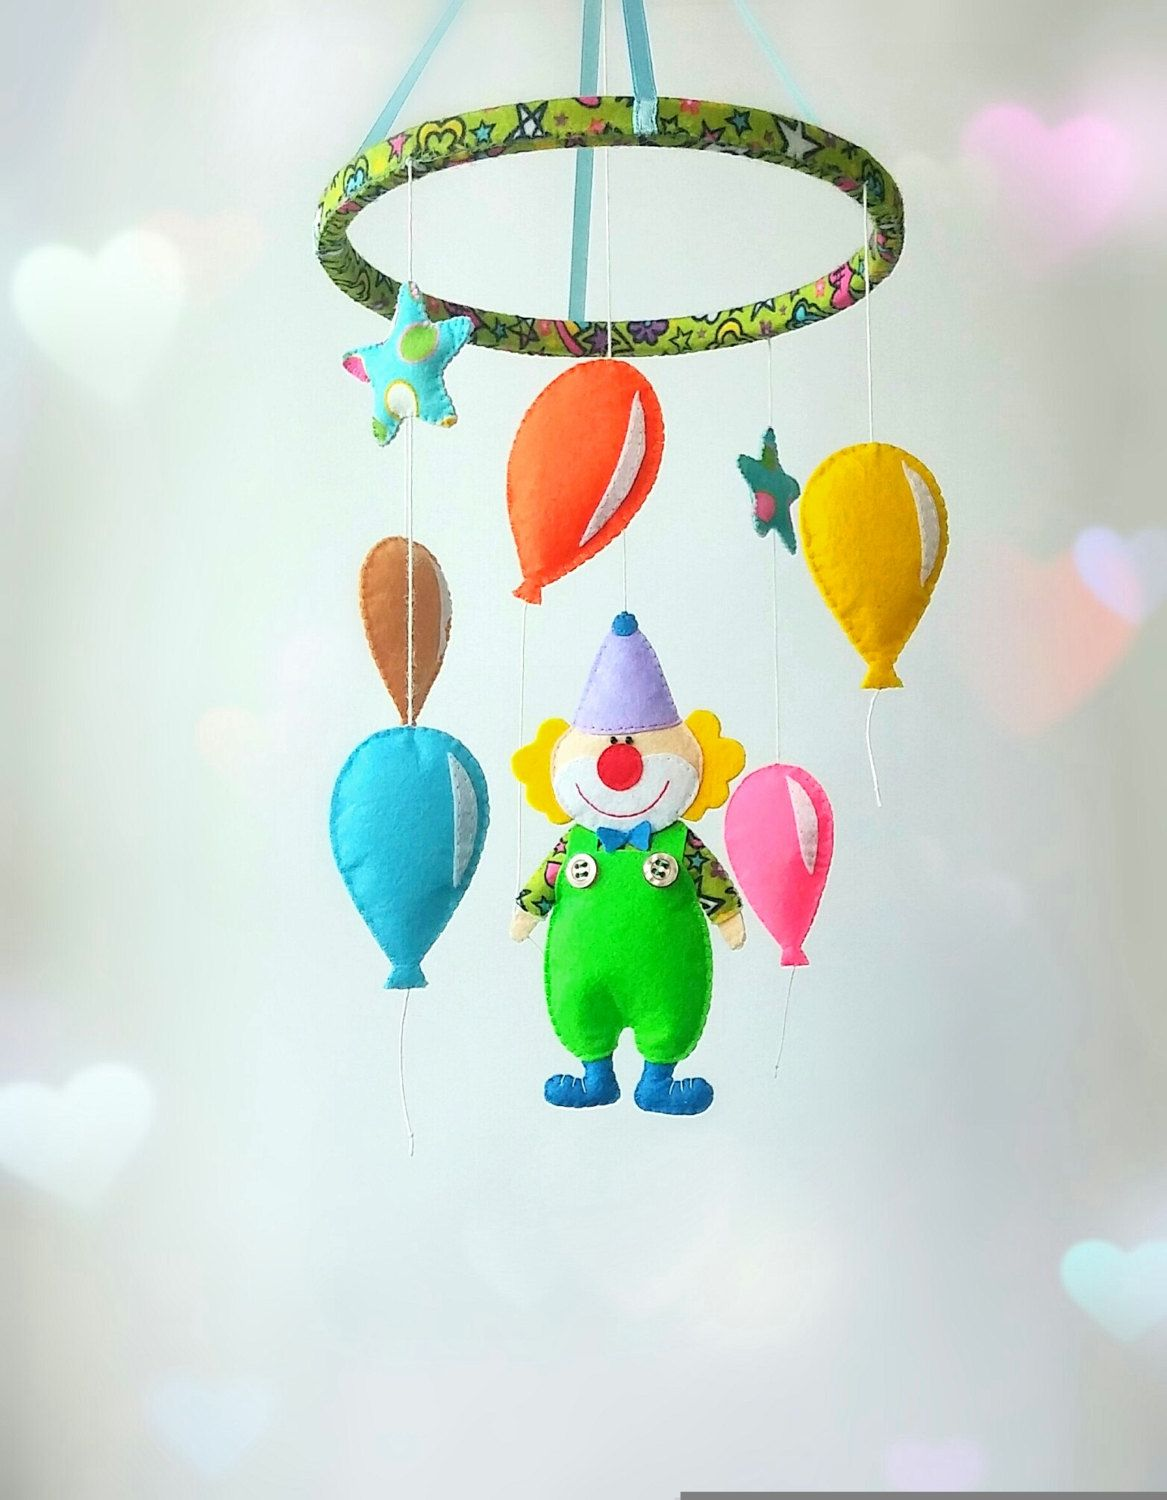 dundry hill llc products mobile crib cribs balloons mini air for hot mobiles felt baby